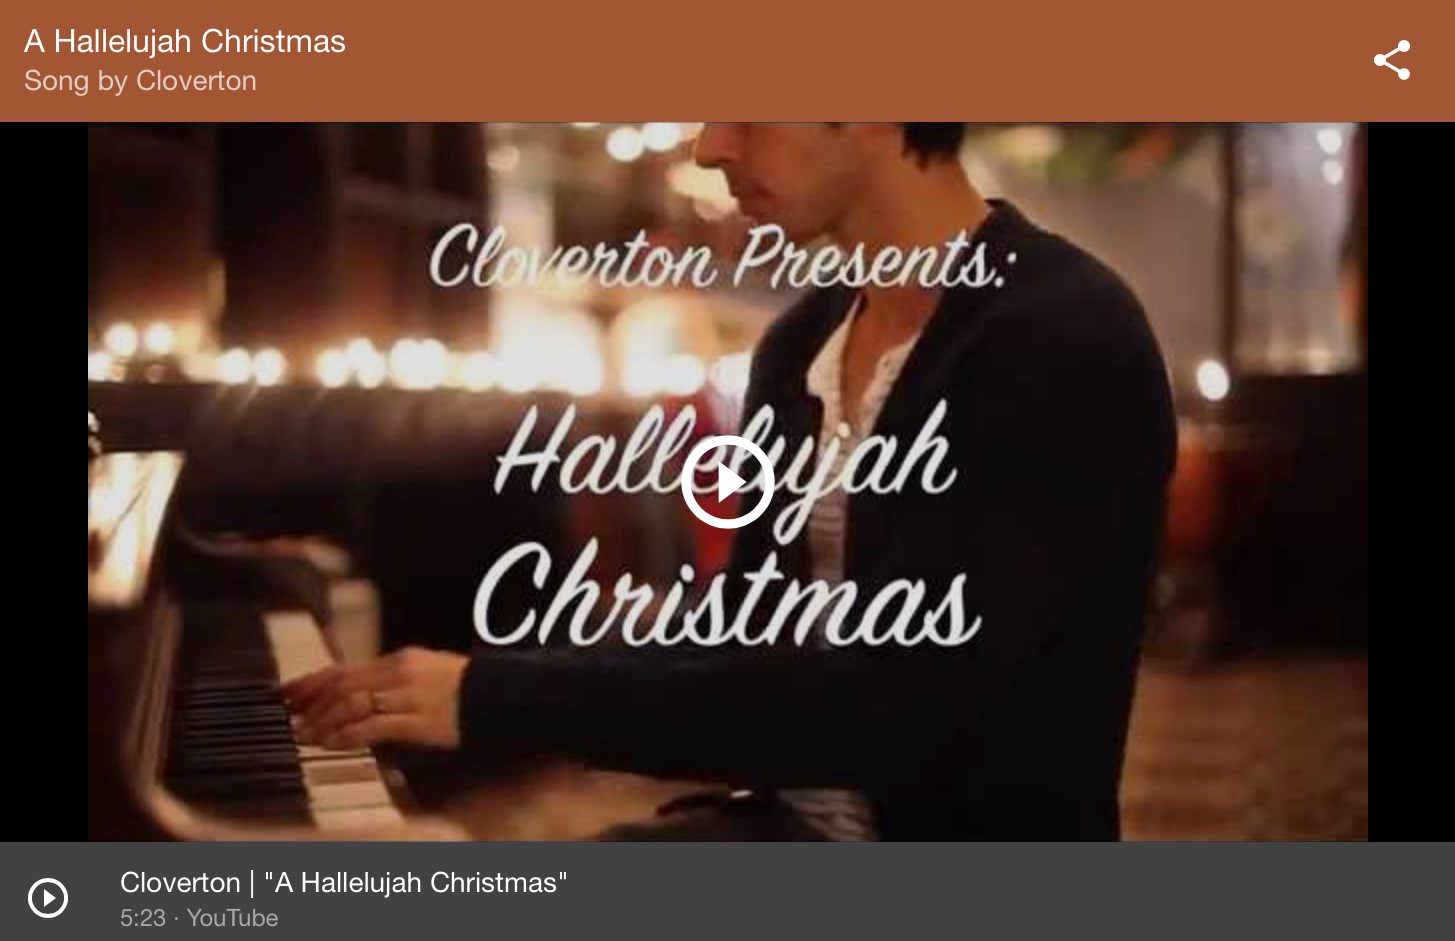 many who have wanted to record their own versions of the song have even rewritten the lyrics - Hallelujah Christmas Version